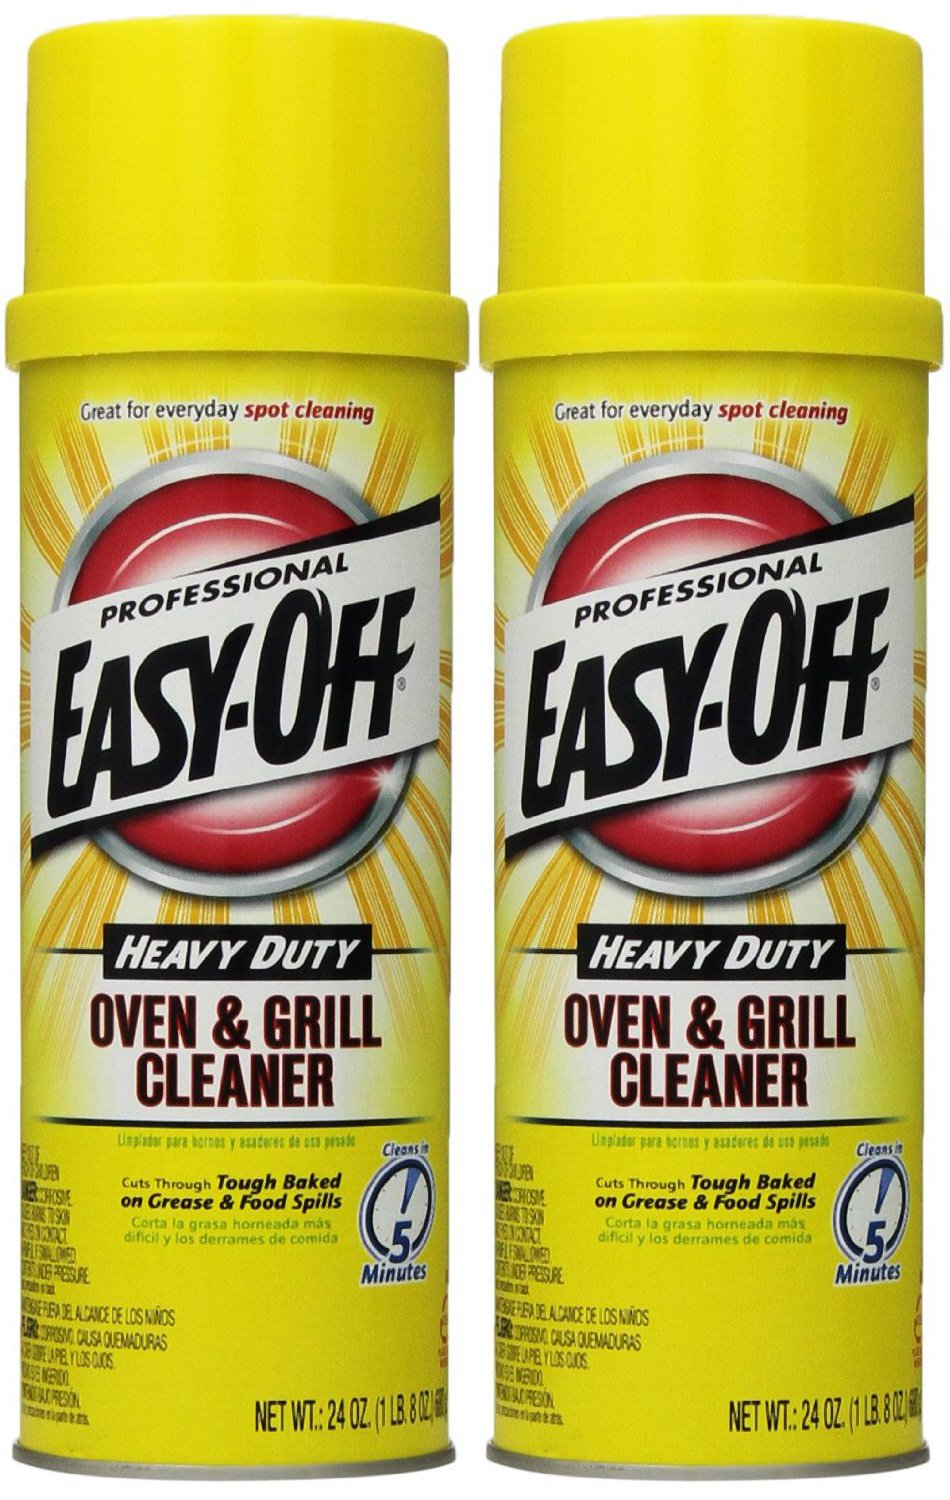 Easy Off Professional Oven & Grill Cleaner Aerosol, 24 oz, Pack of 2 by Easy Off